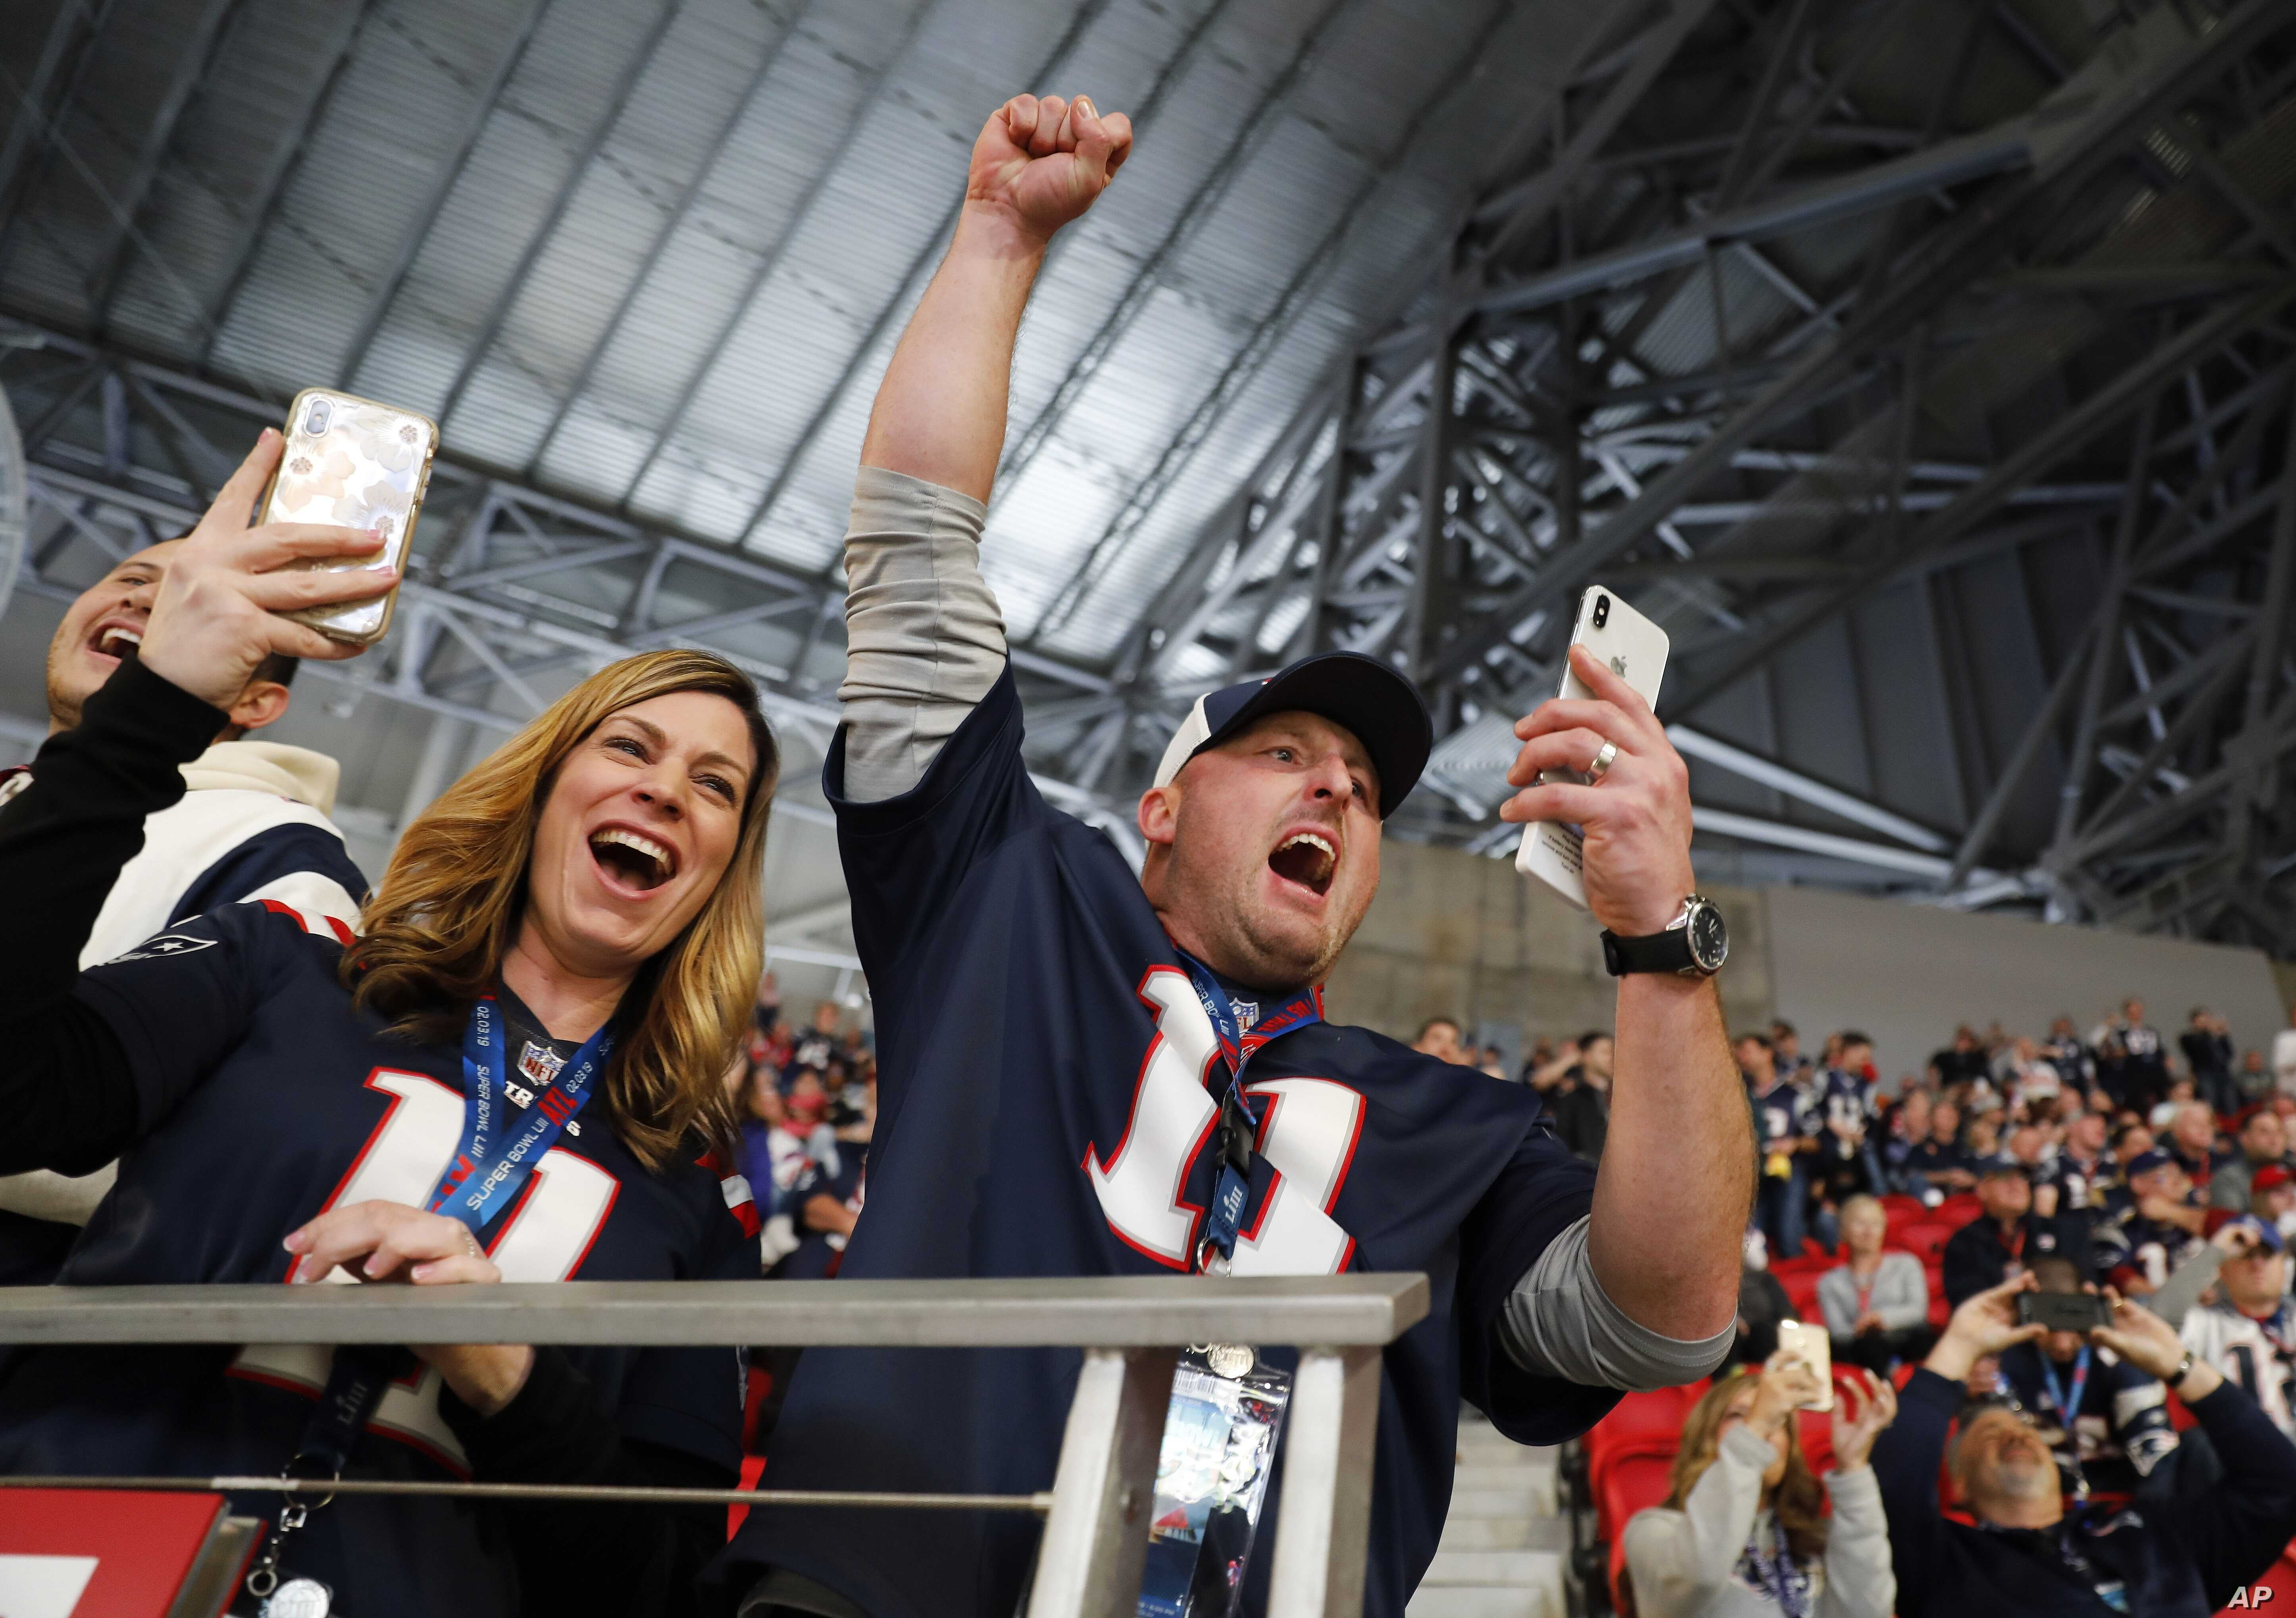 Fans cheer as the New England Patriots' Tom Brady takes the field before the NFL Super Bowl LIII football game between the Los Angeles Rams and the New England Patriots, Feb. 3, 2019, in Atlanta, Georgia.